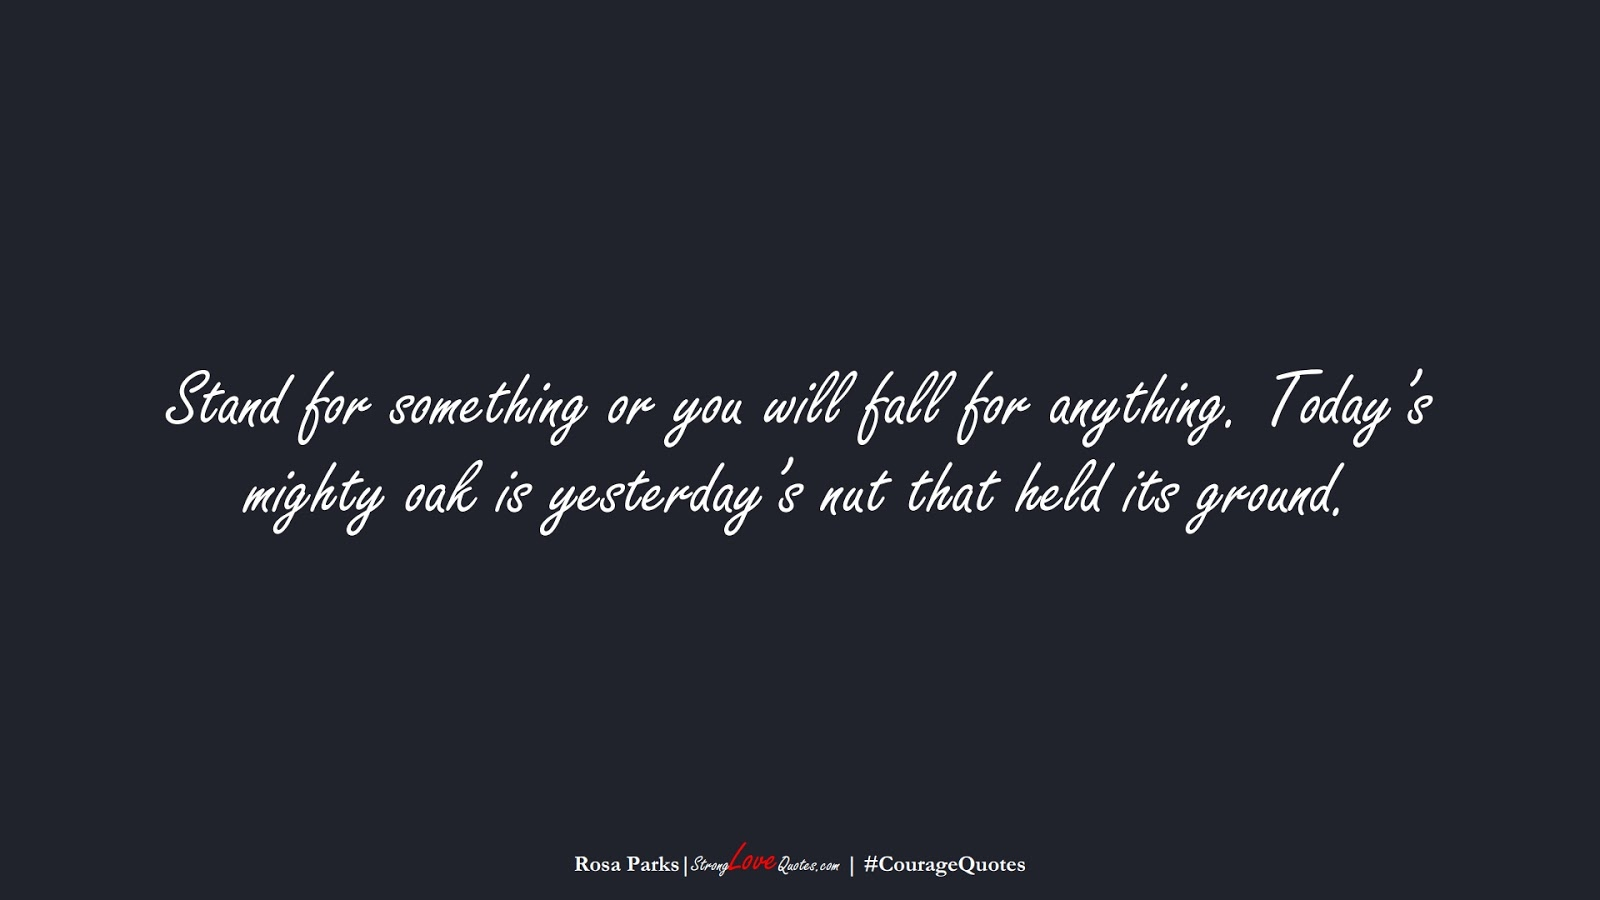 Stand for something or you will fall for anything. Today's mighty oak is yesterday's nut that held its ground. (Rosa Parks);  #CourageQuotes